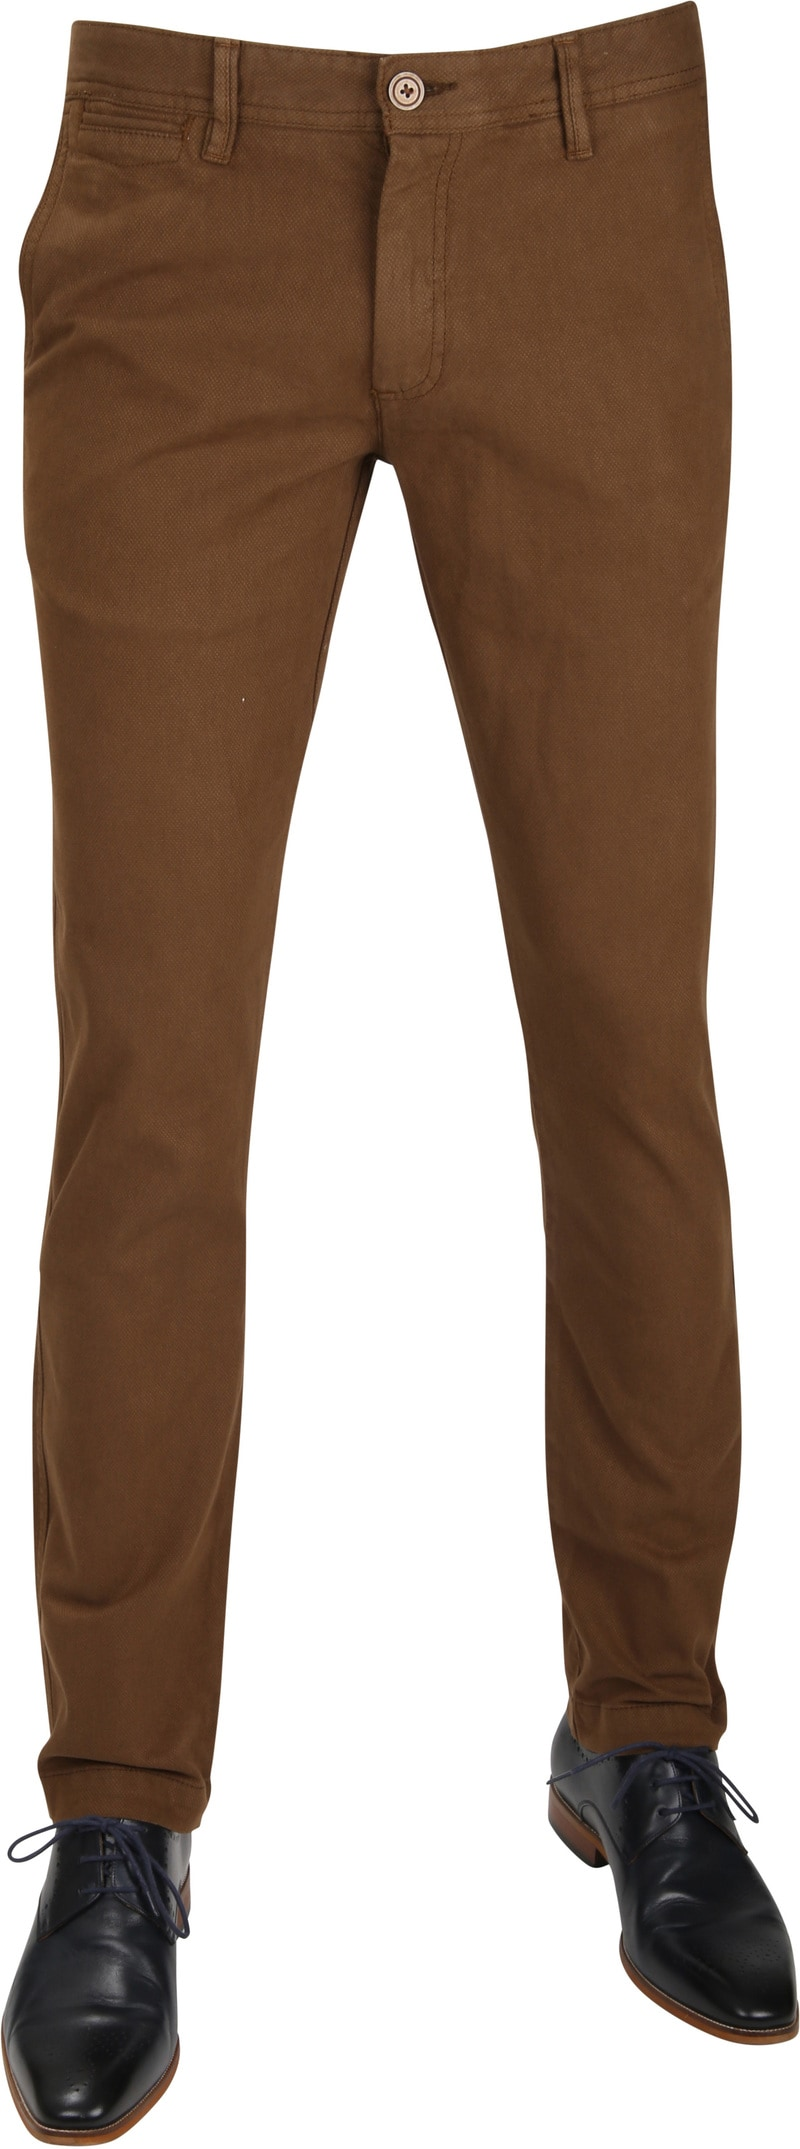 Suitable Chino Oakville Dessin Bruin foto 0